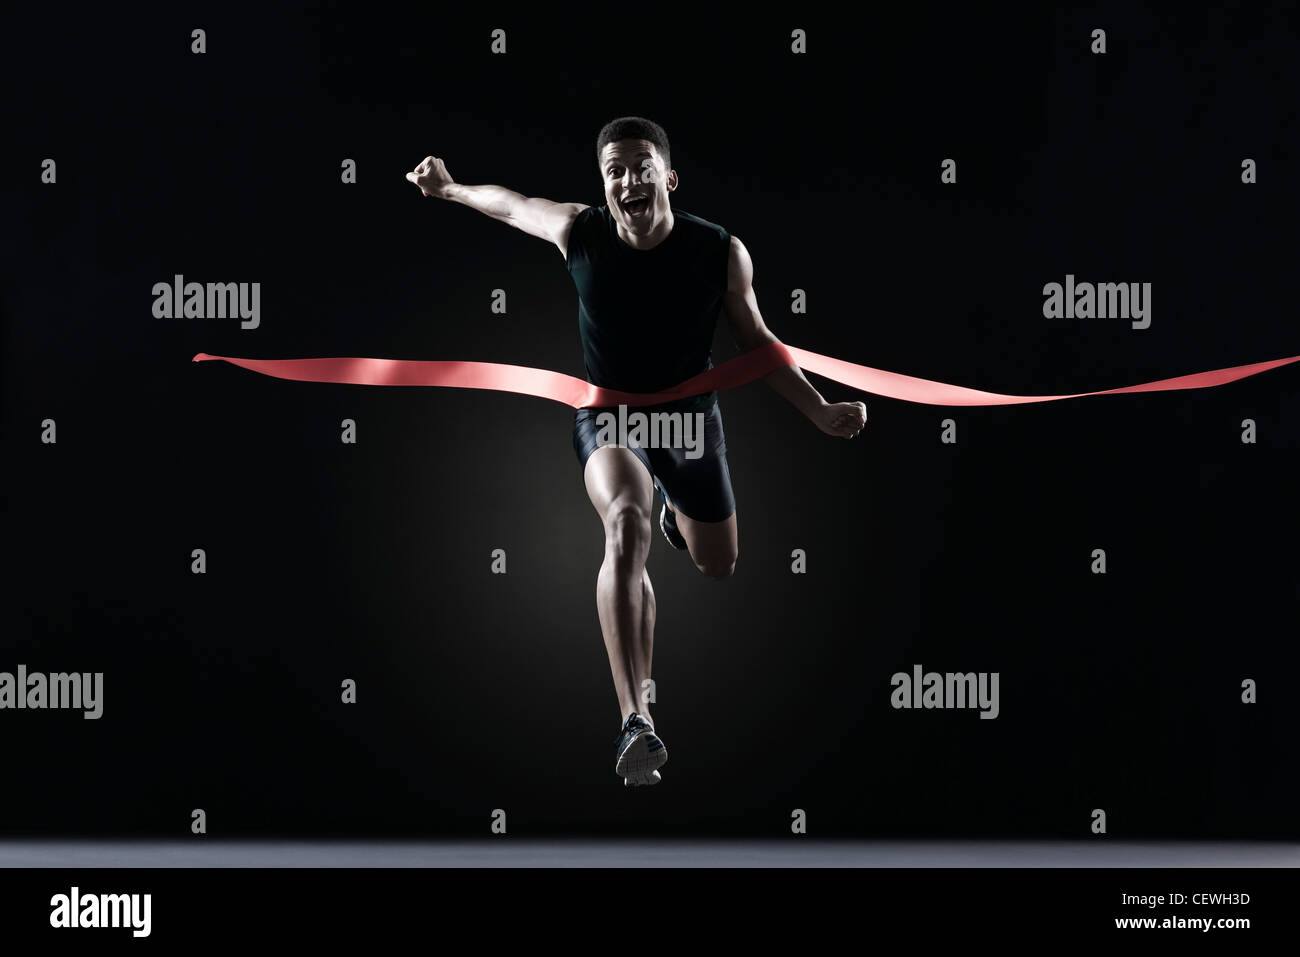 Runner crossing finish line - Stock Image